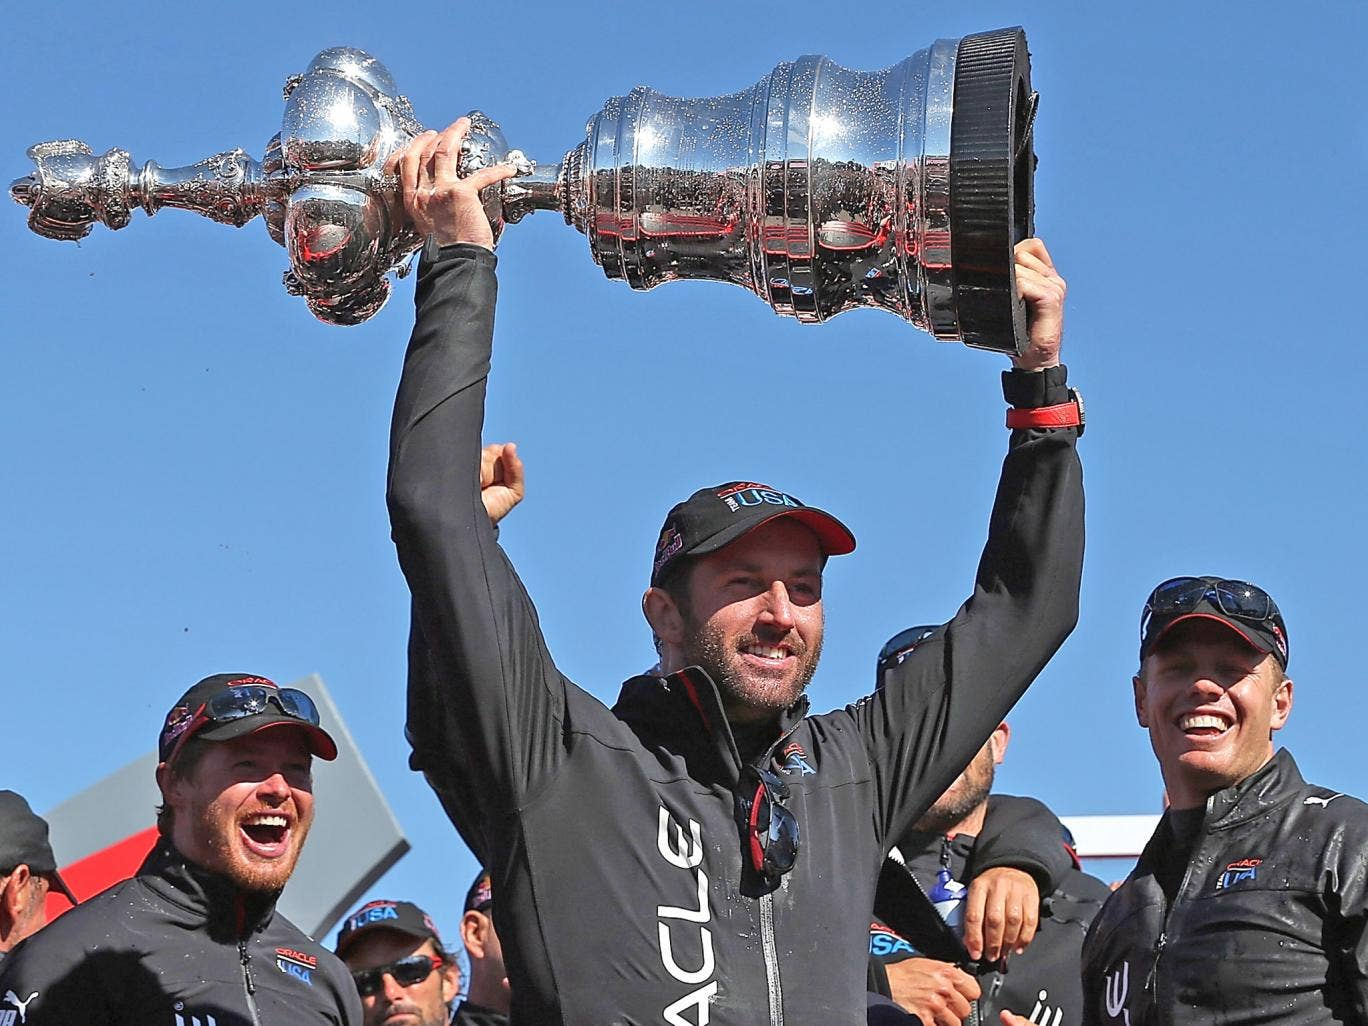 Sir Ben Ainslie played a role in Oracle Team USA's victory last year